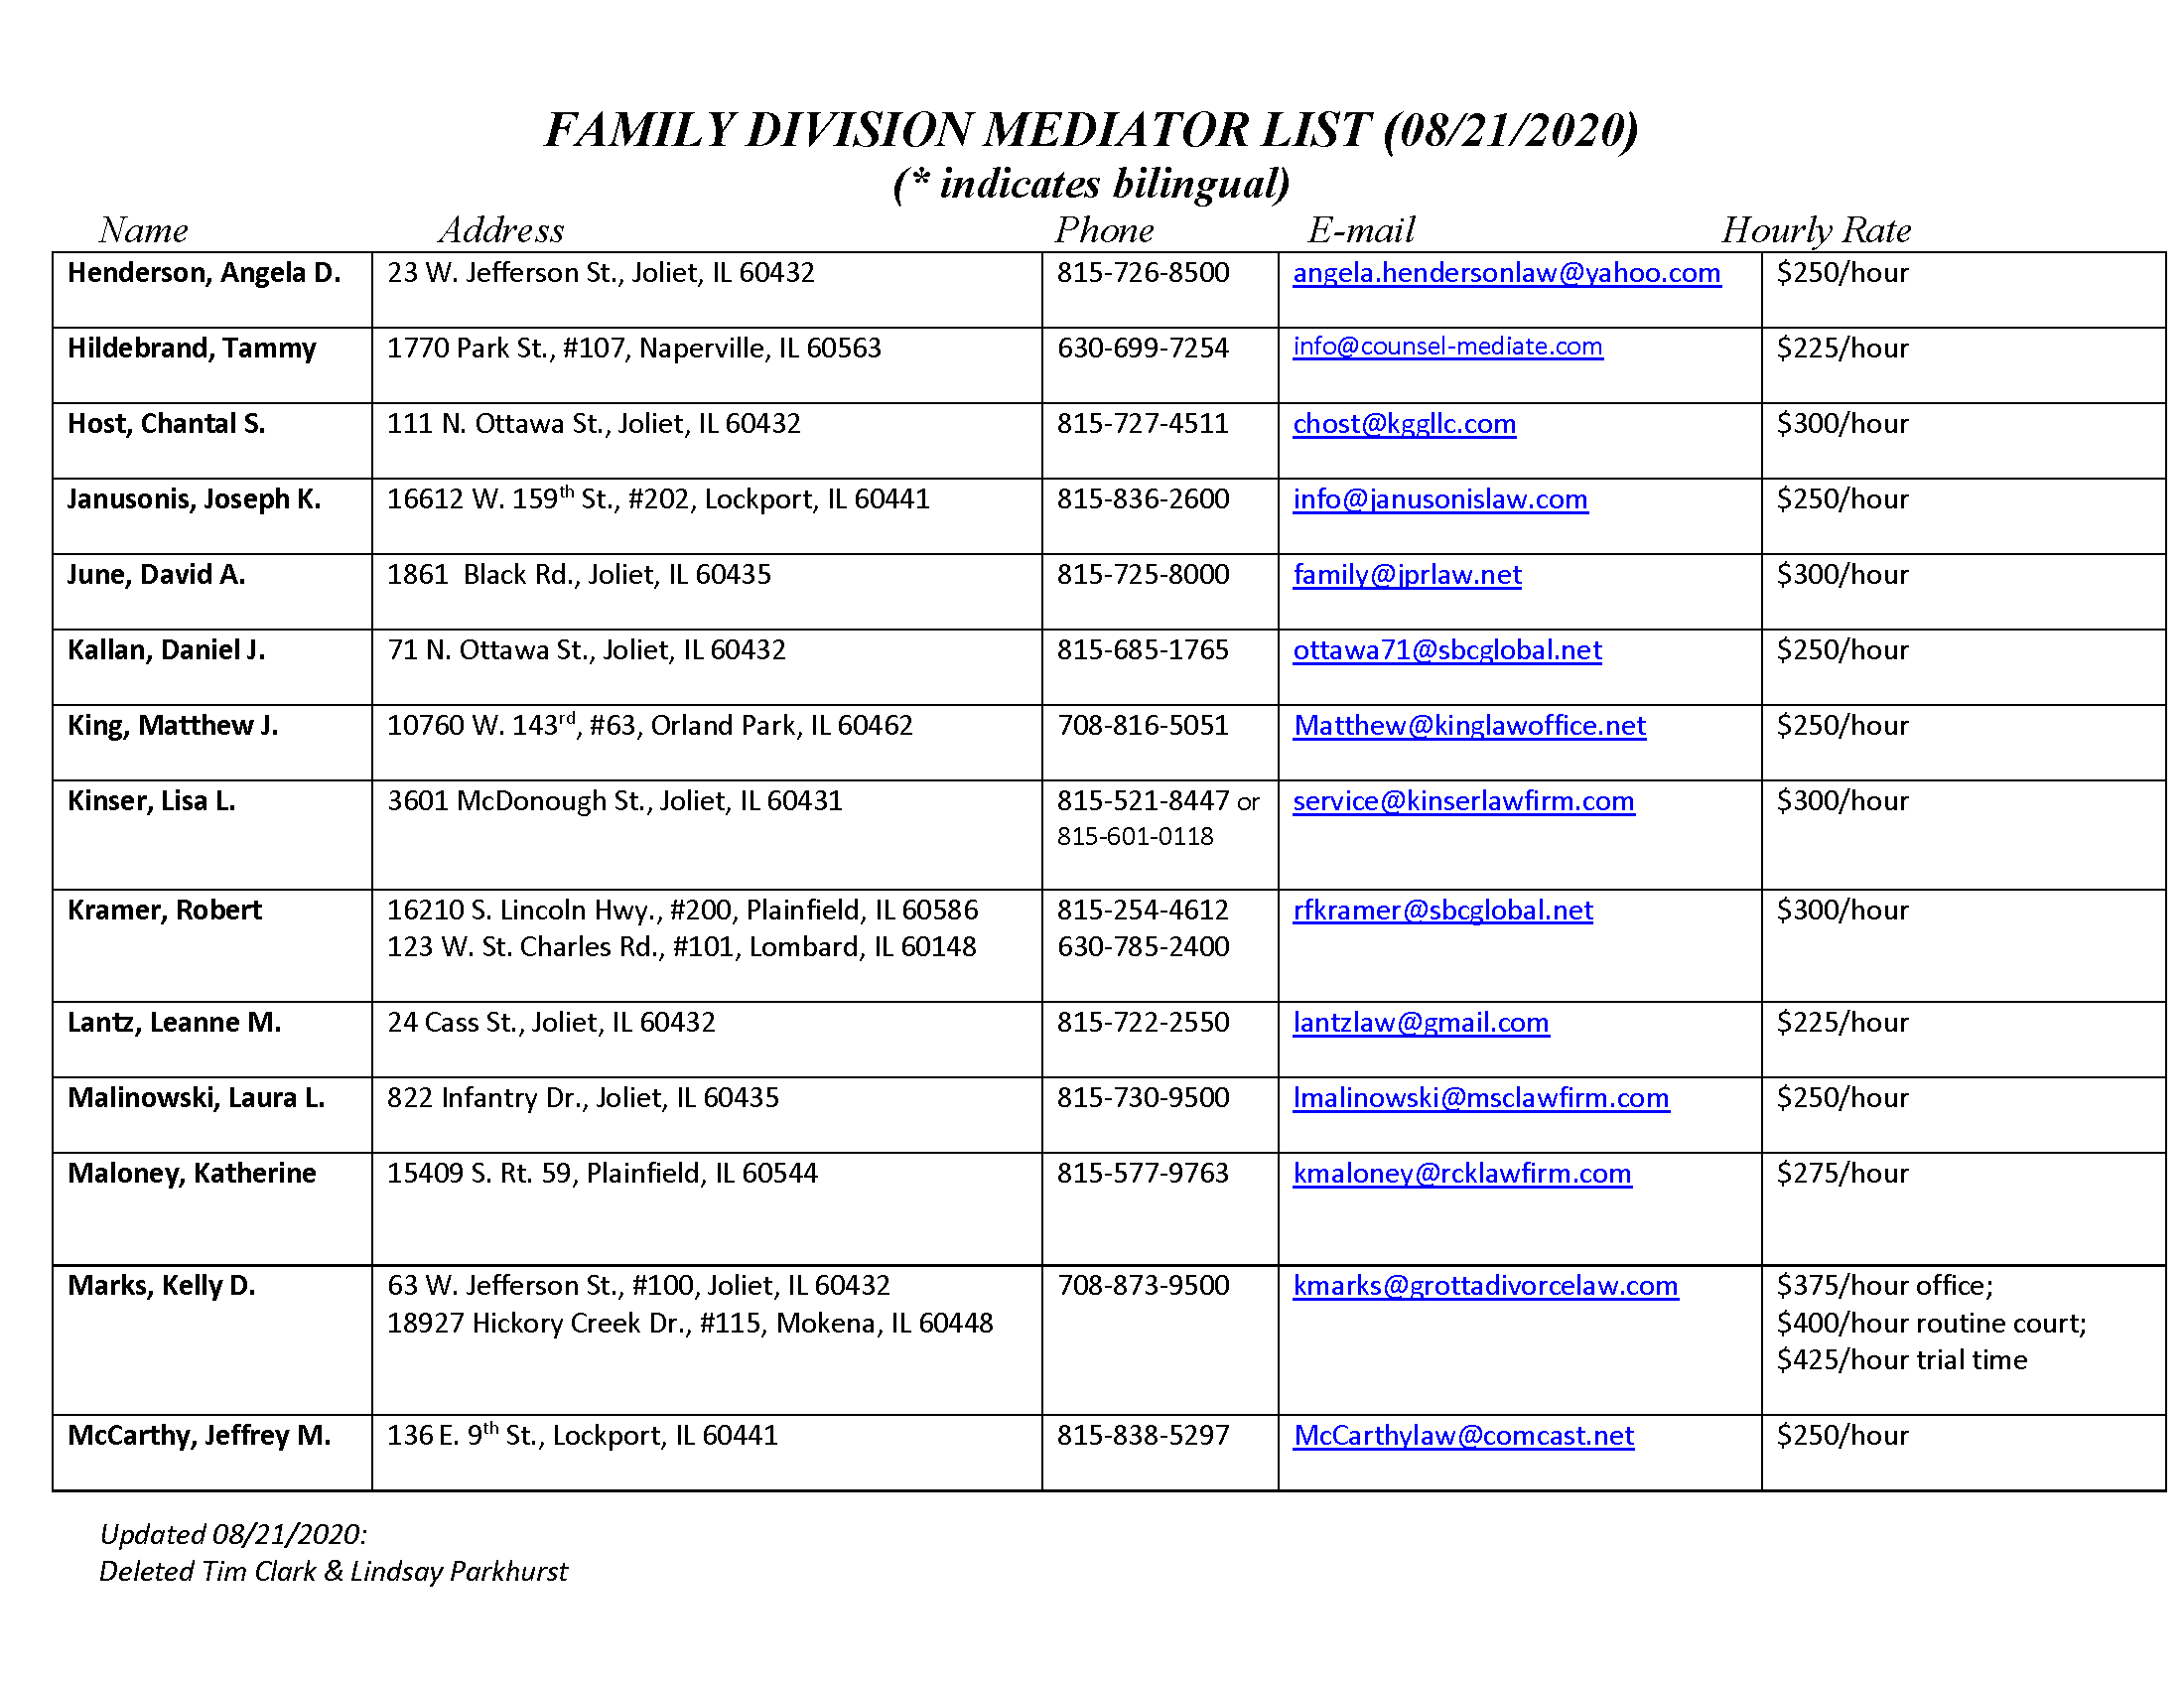 Family Mediator List pg. 3